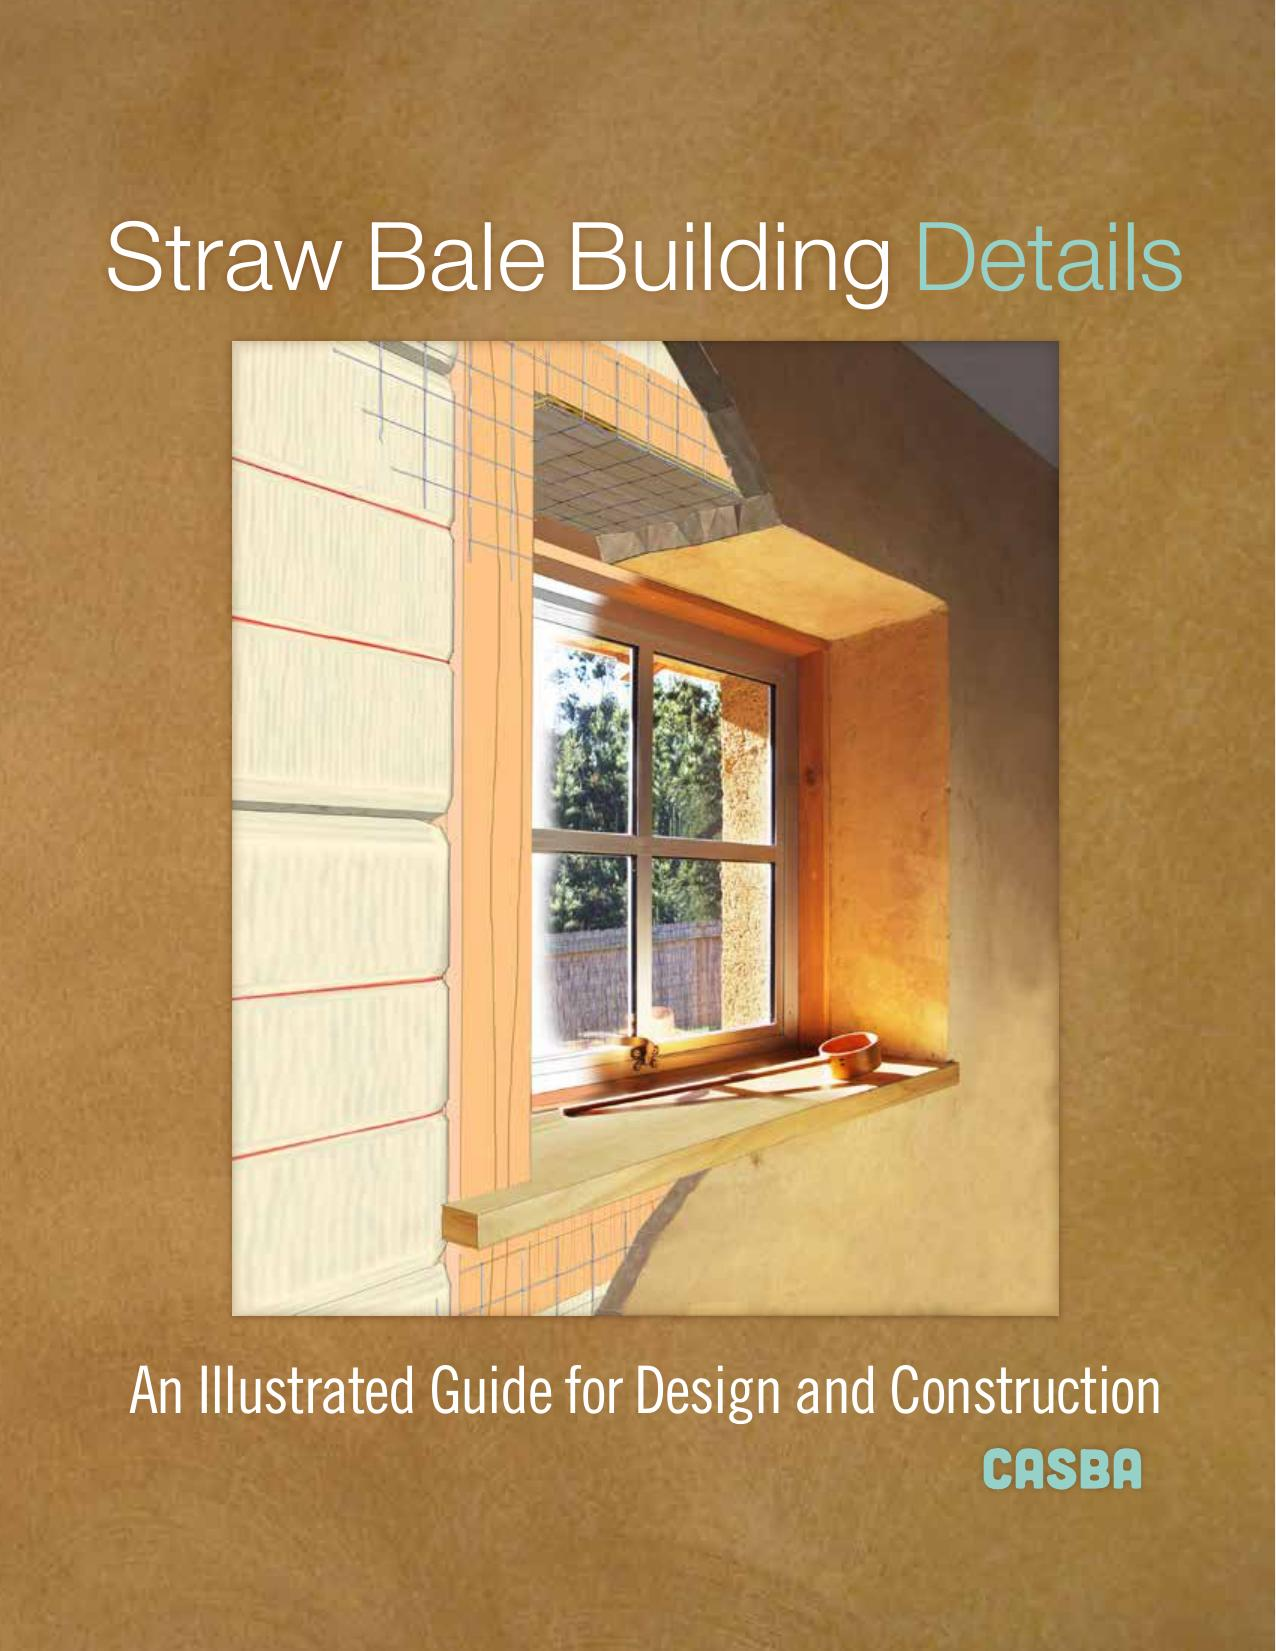 Straw Bale Building Details: An Illustrated Guide for Design and Construction, Illustrated Edition